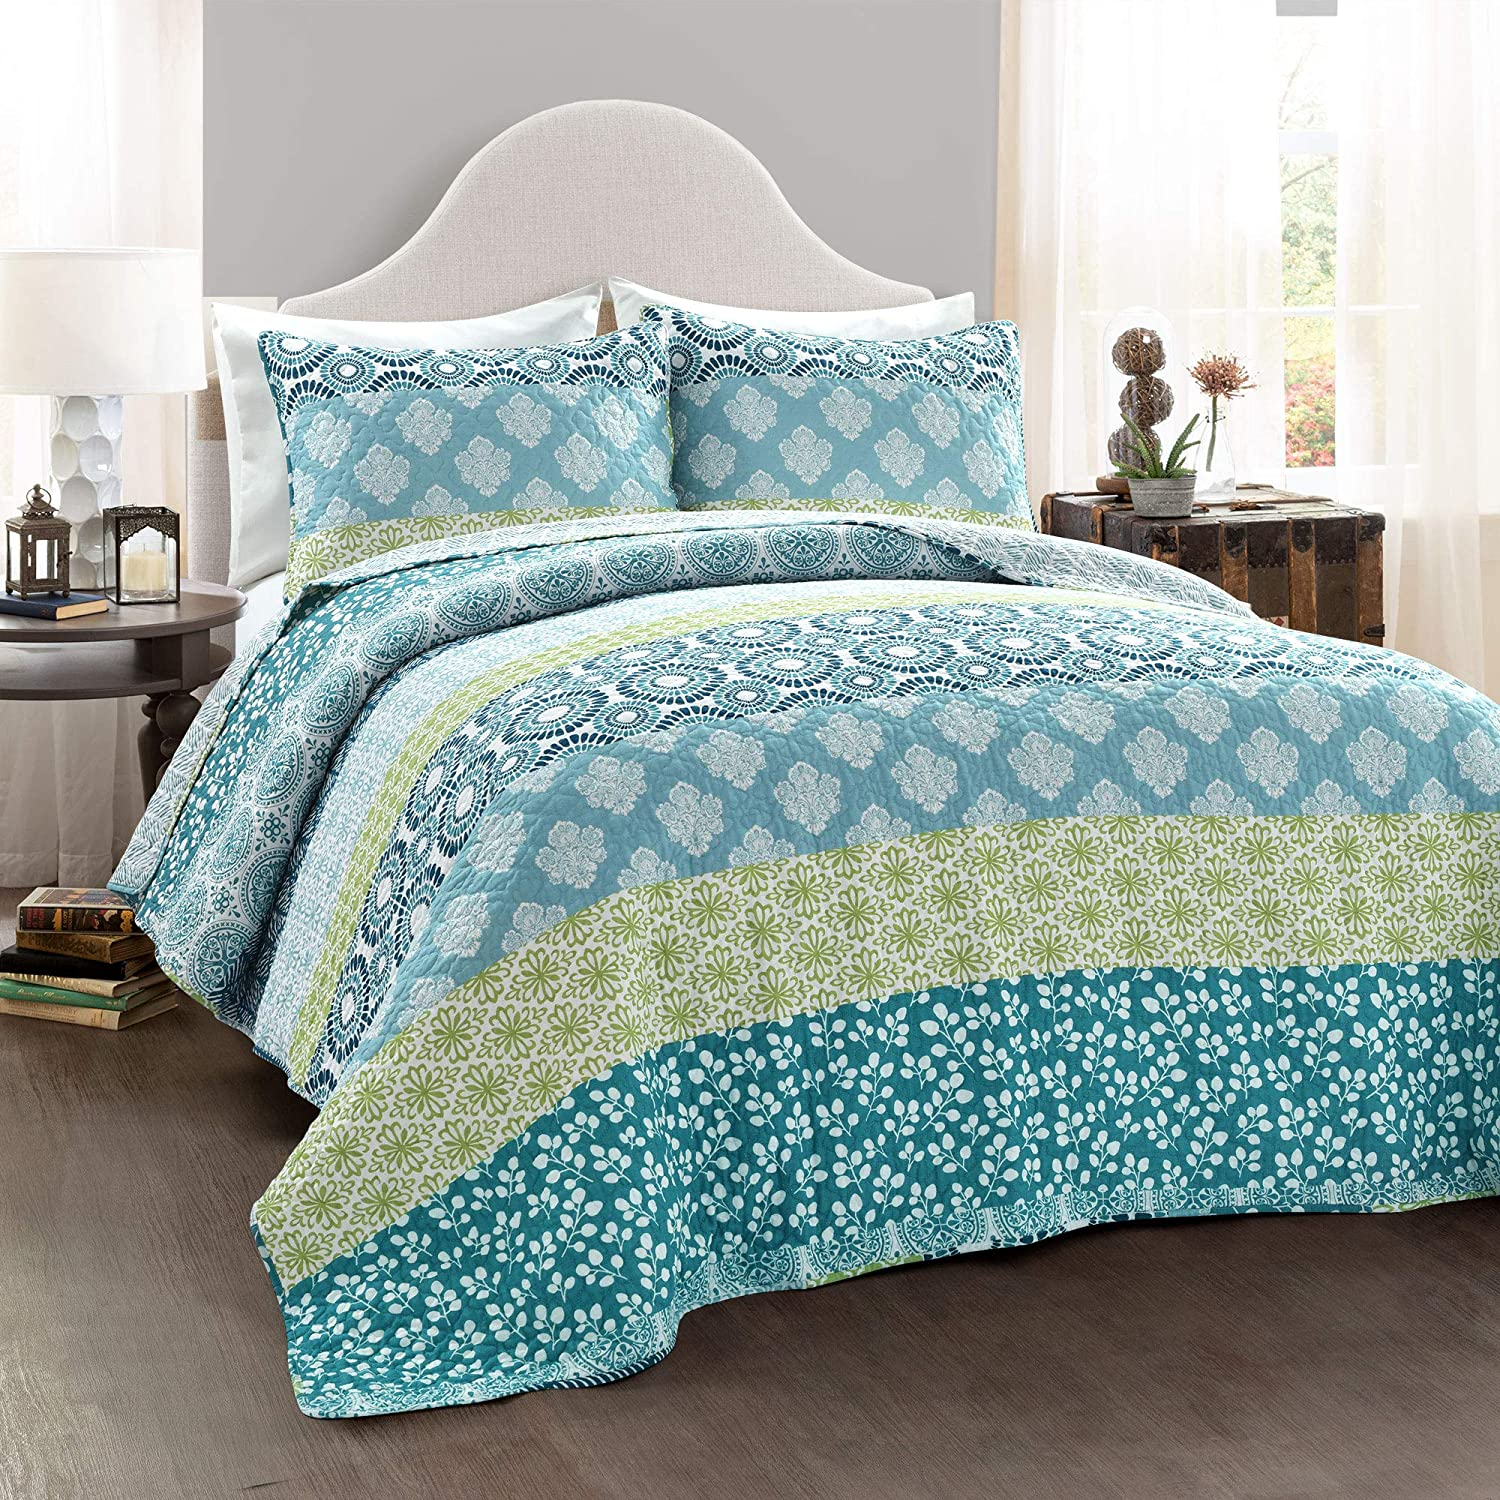 Lush Decor Bohemian Striped Quilt Reversible 3 Piece Bedding Set, Full Queen, Blue and Green